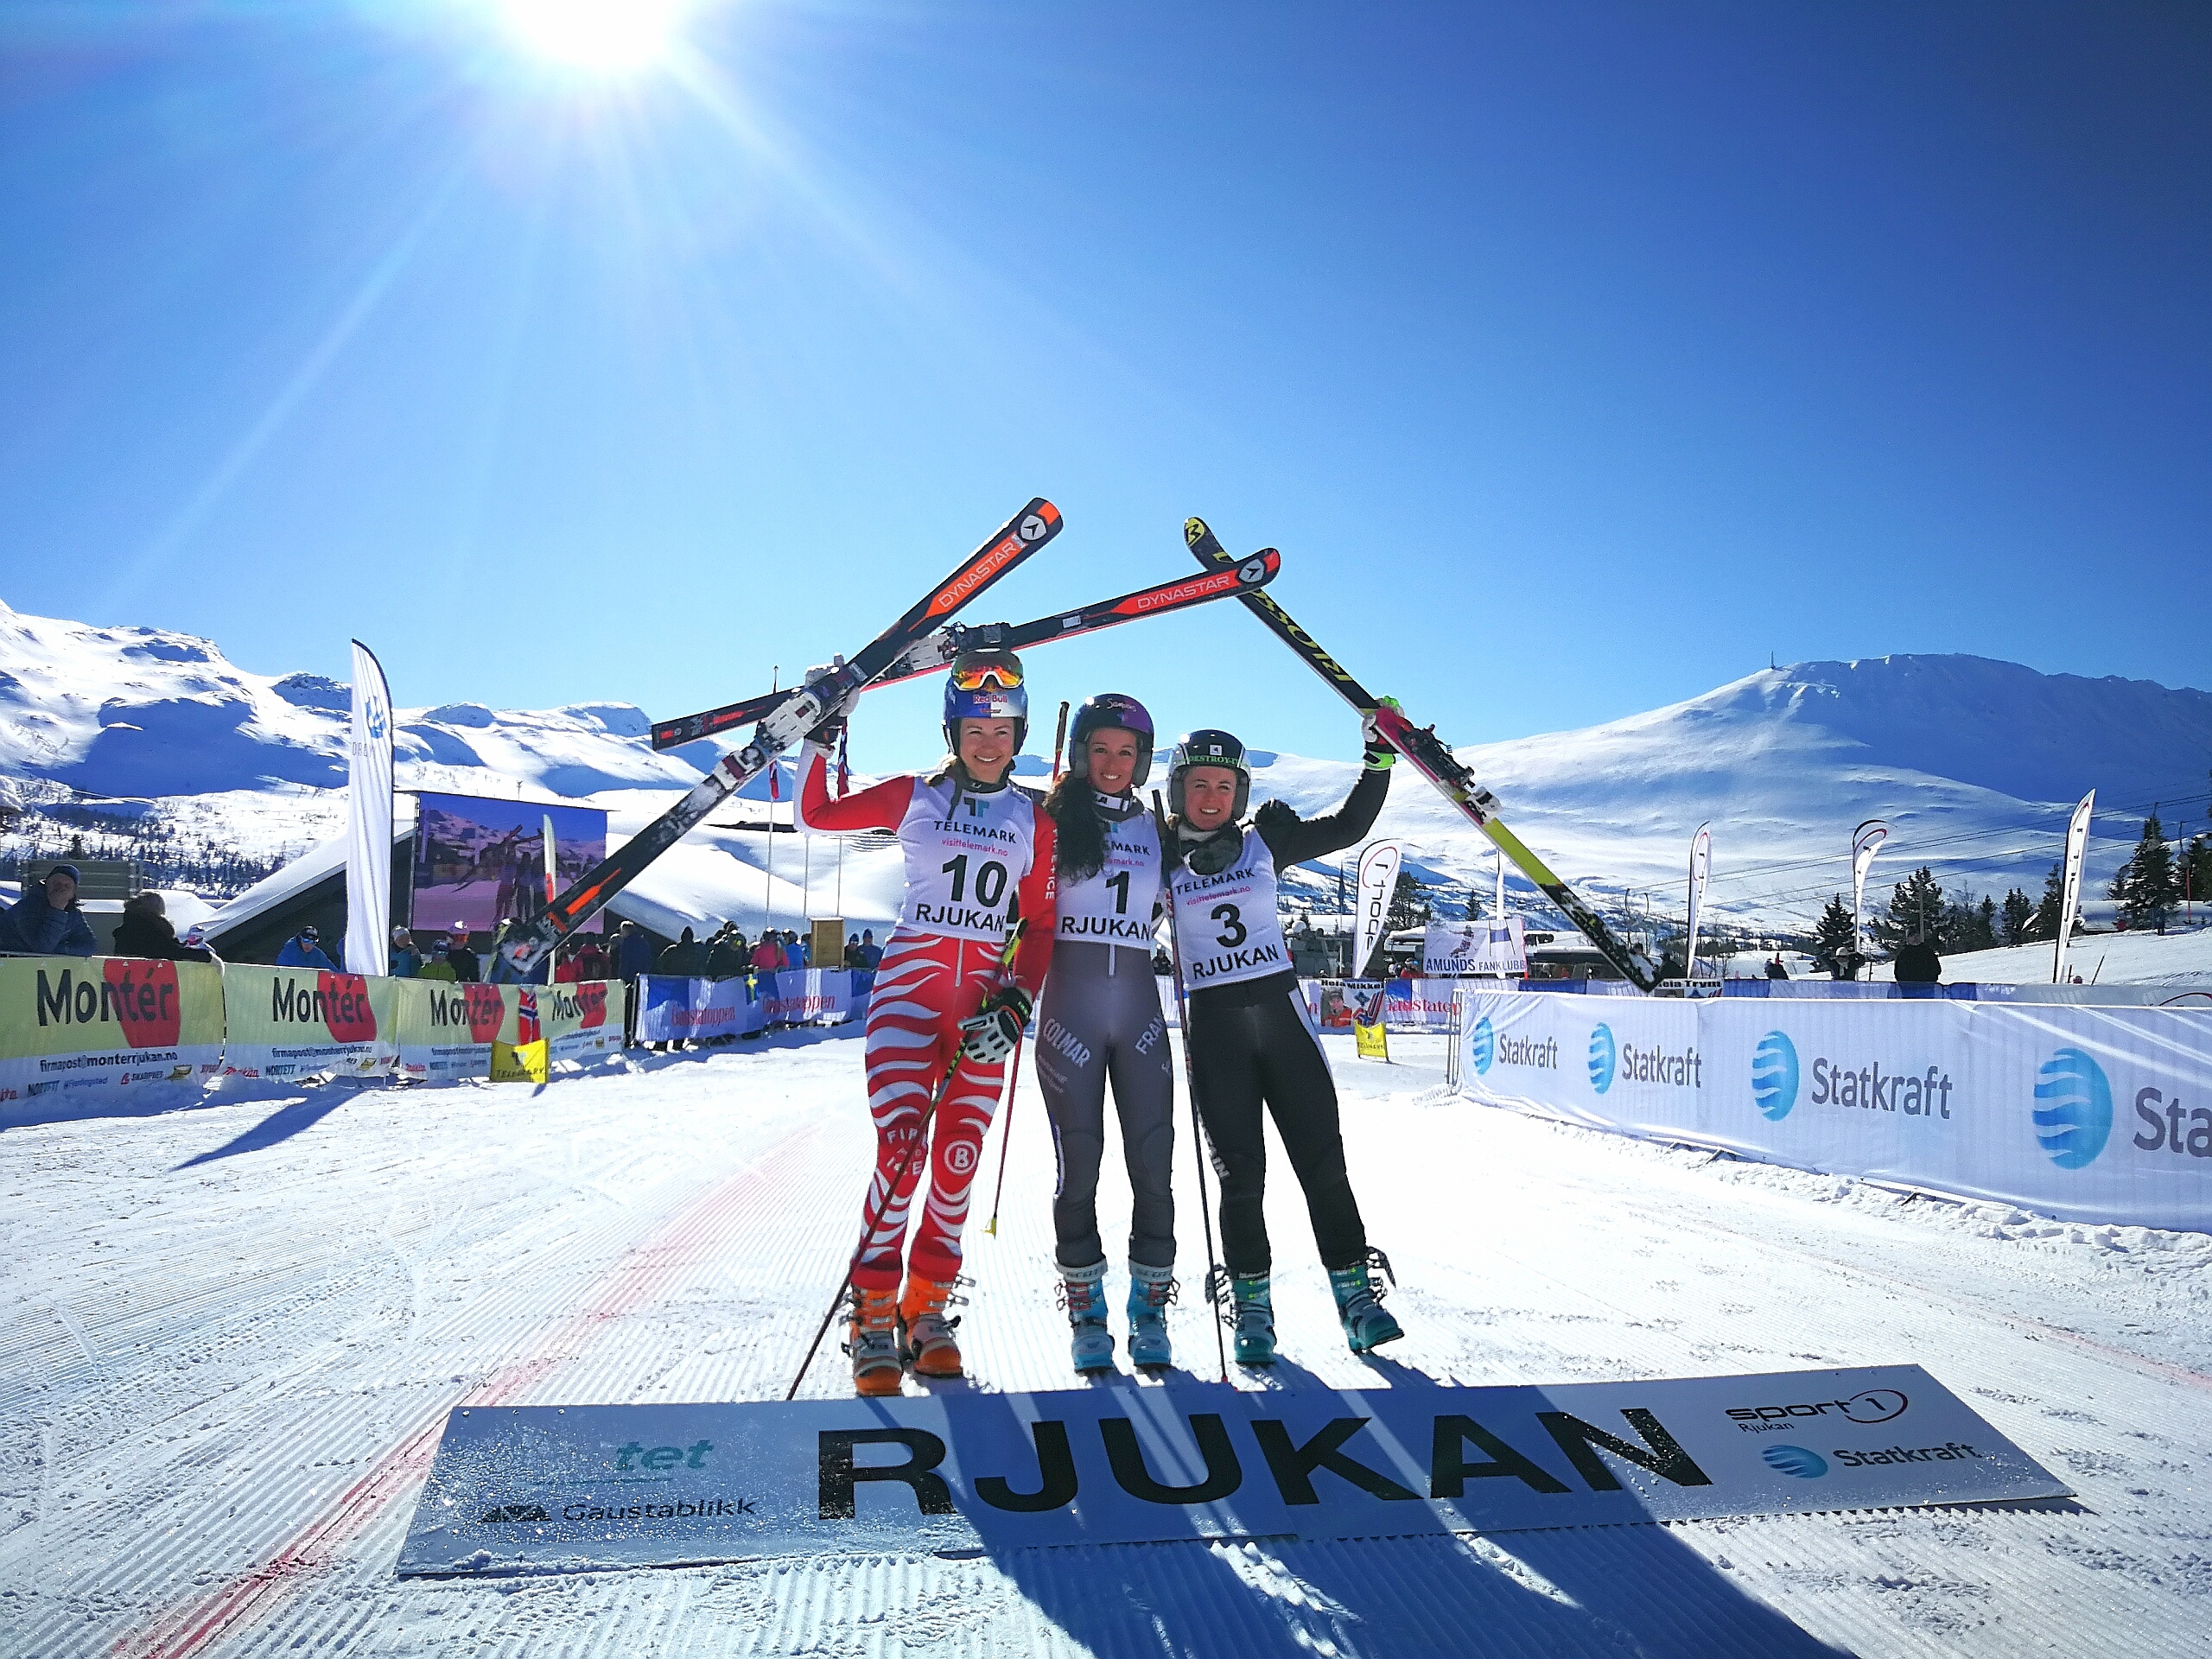 The Sprint podium in Rjukan, Norway